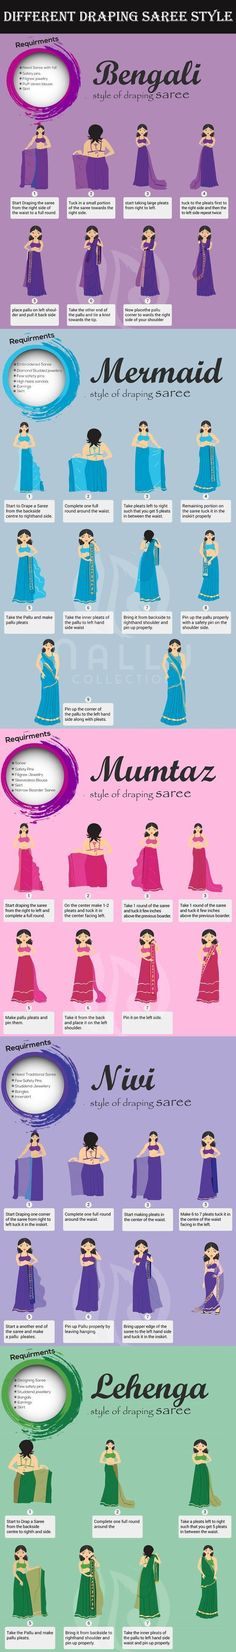 different saree draping styles